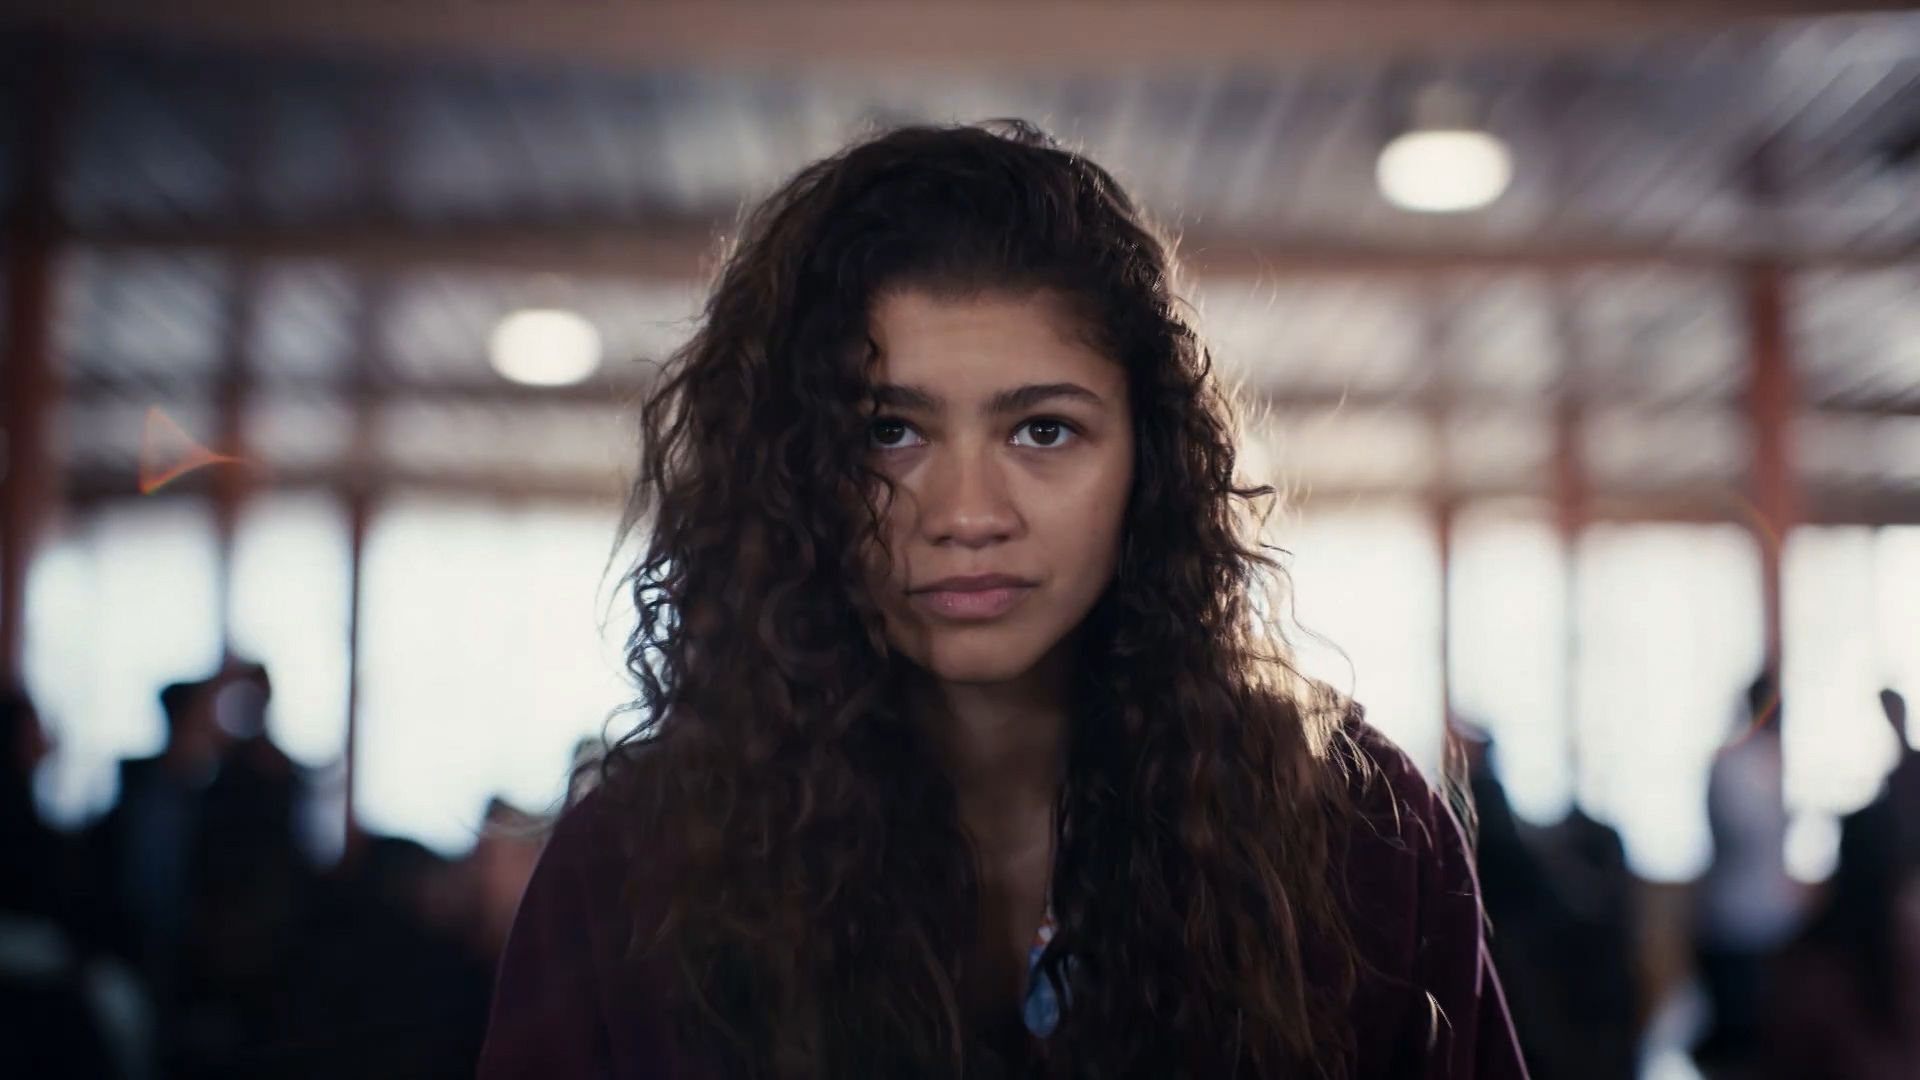 HBO Euphoria episode 2 watch online stream live HBO Go